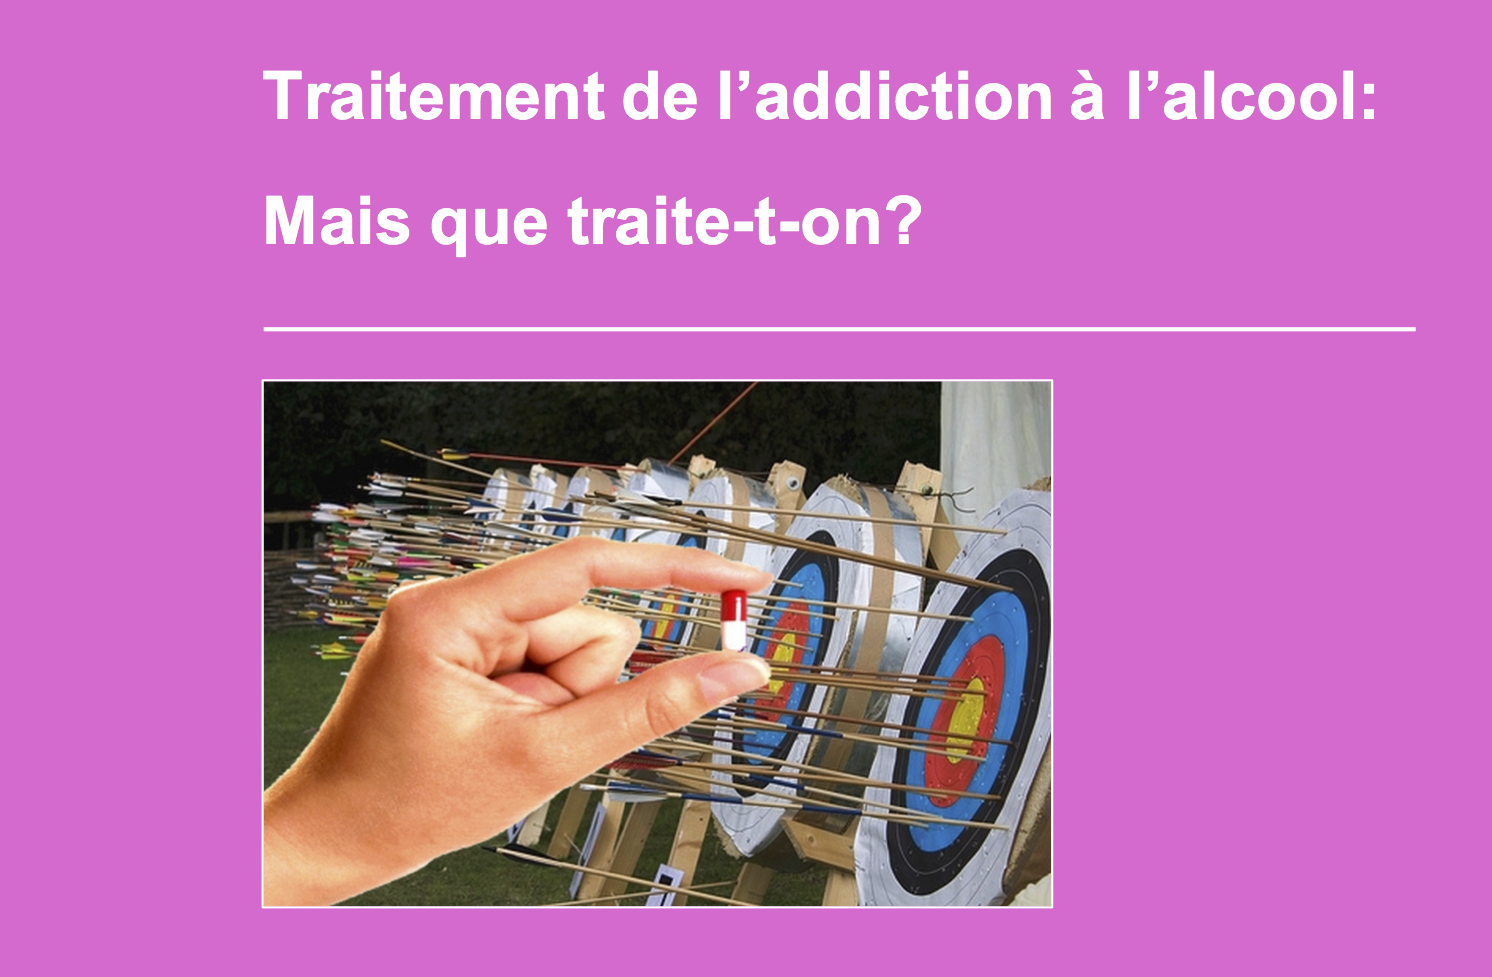 Traitement à l'addiction à l'alcool : mais que traite-t-on ?